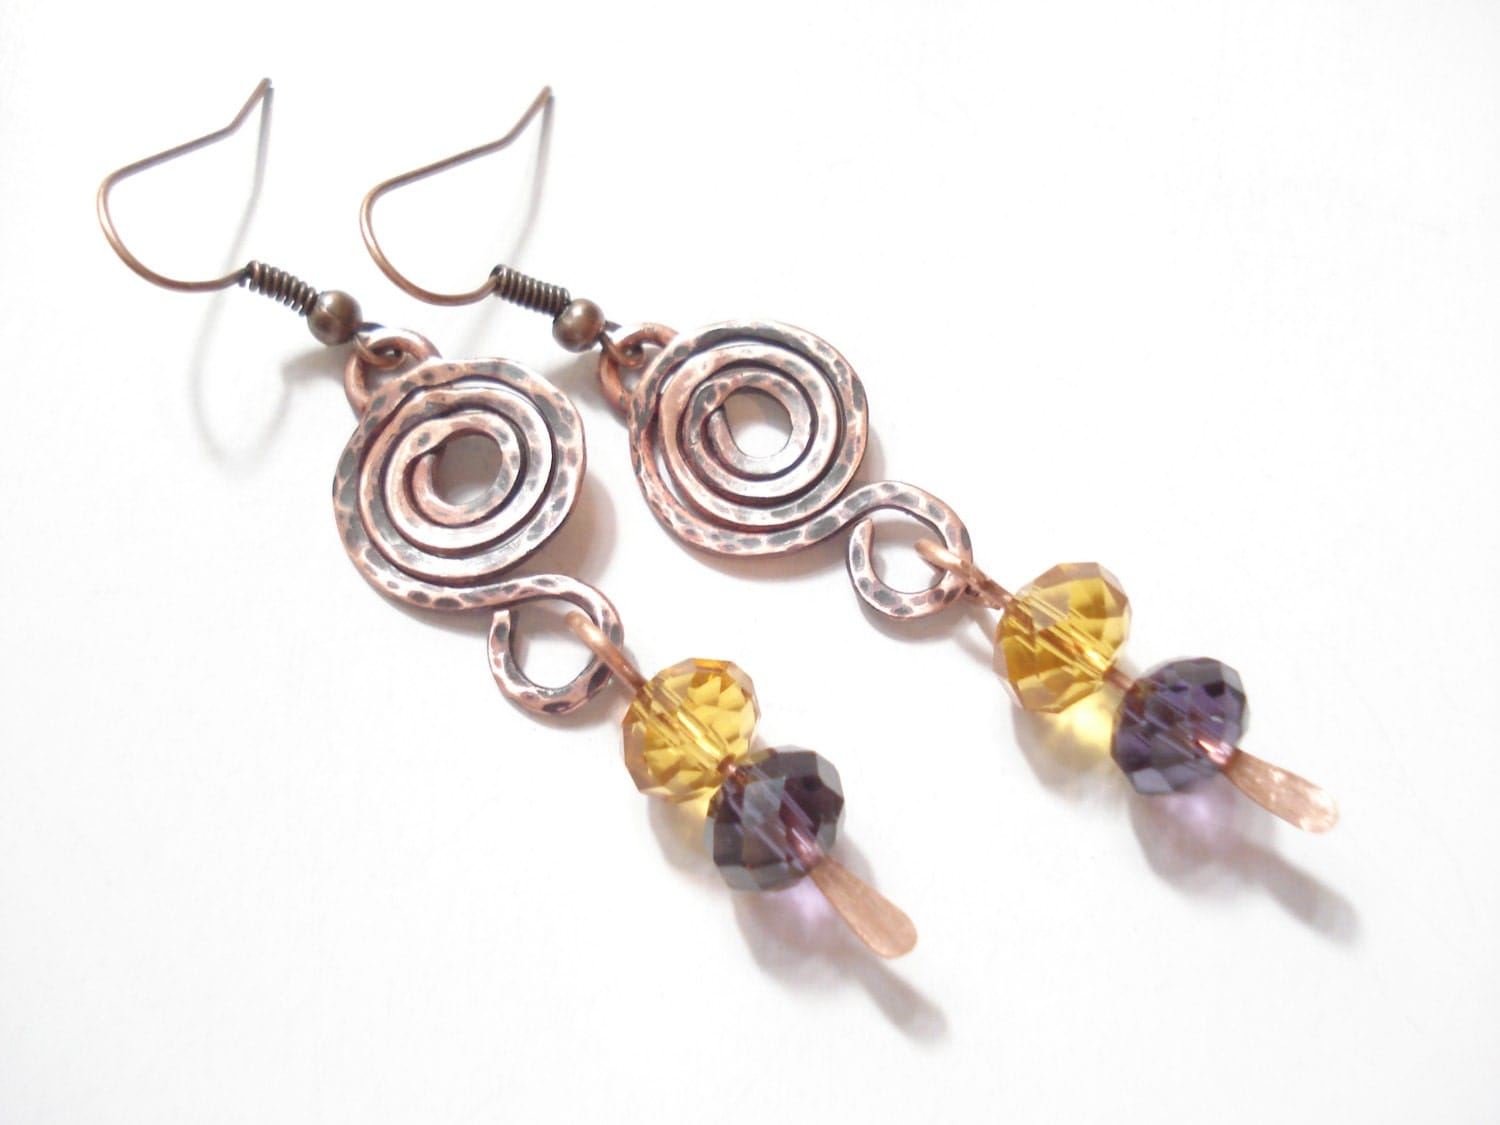 made earrings handmade wire wrapped earrings antique faced earrings wire 3900